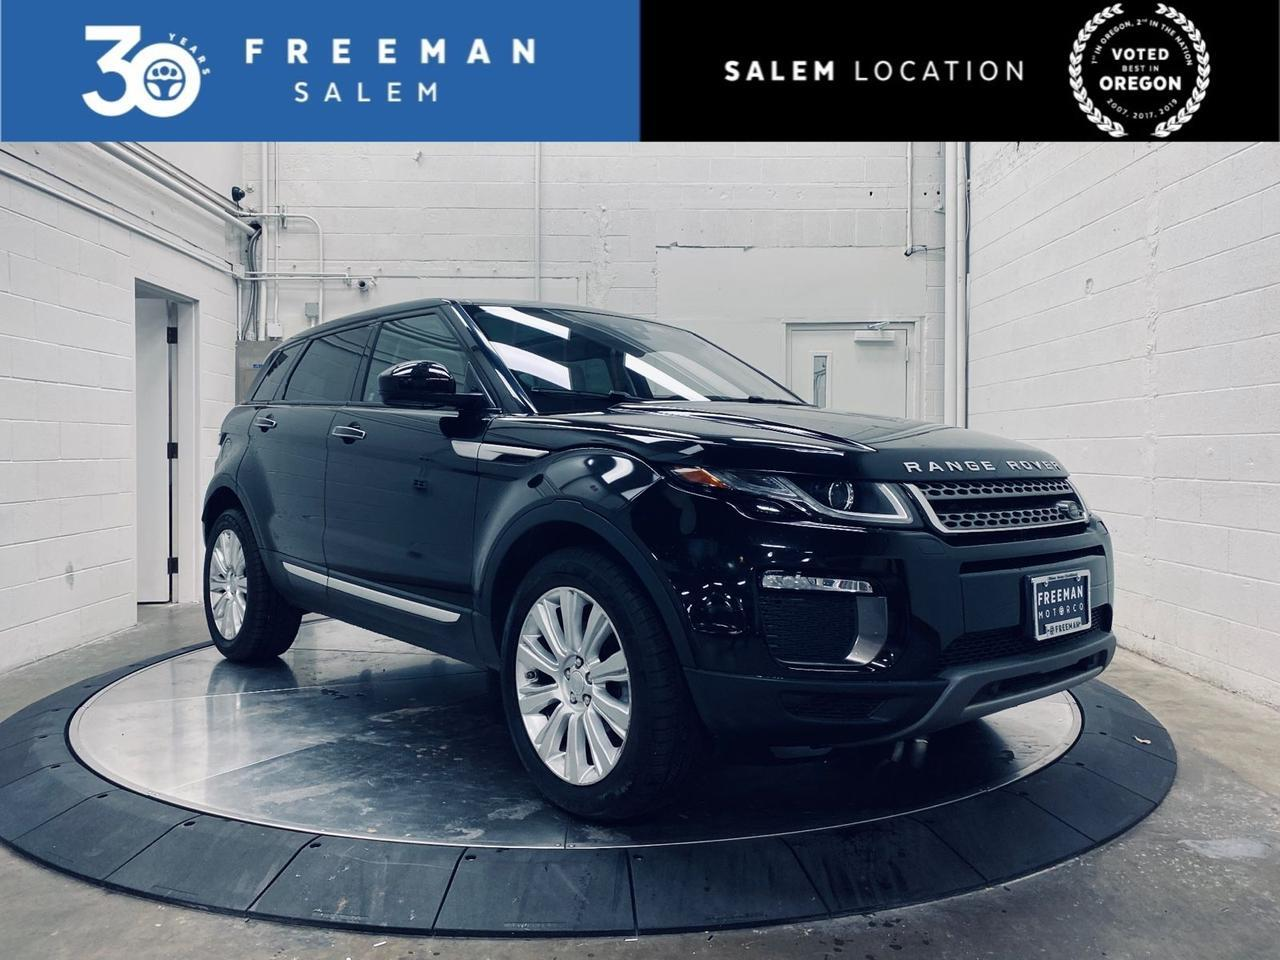 2017 Land Rover Range Rover Evoque HSE Htd Seats Panorama Roof Salem OR